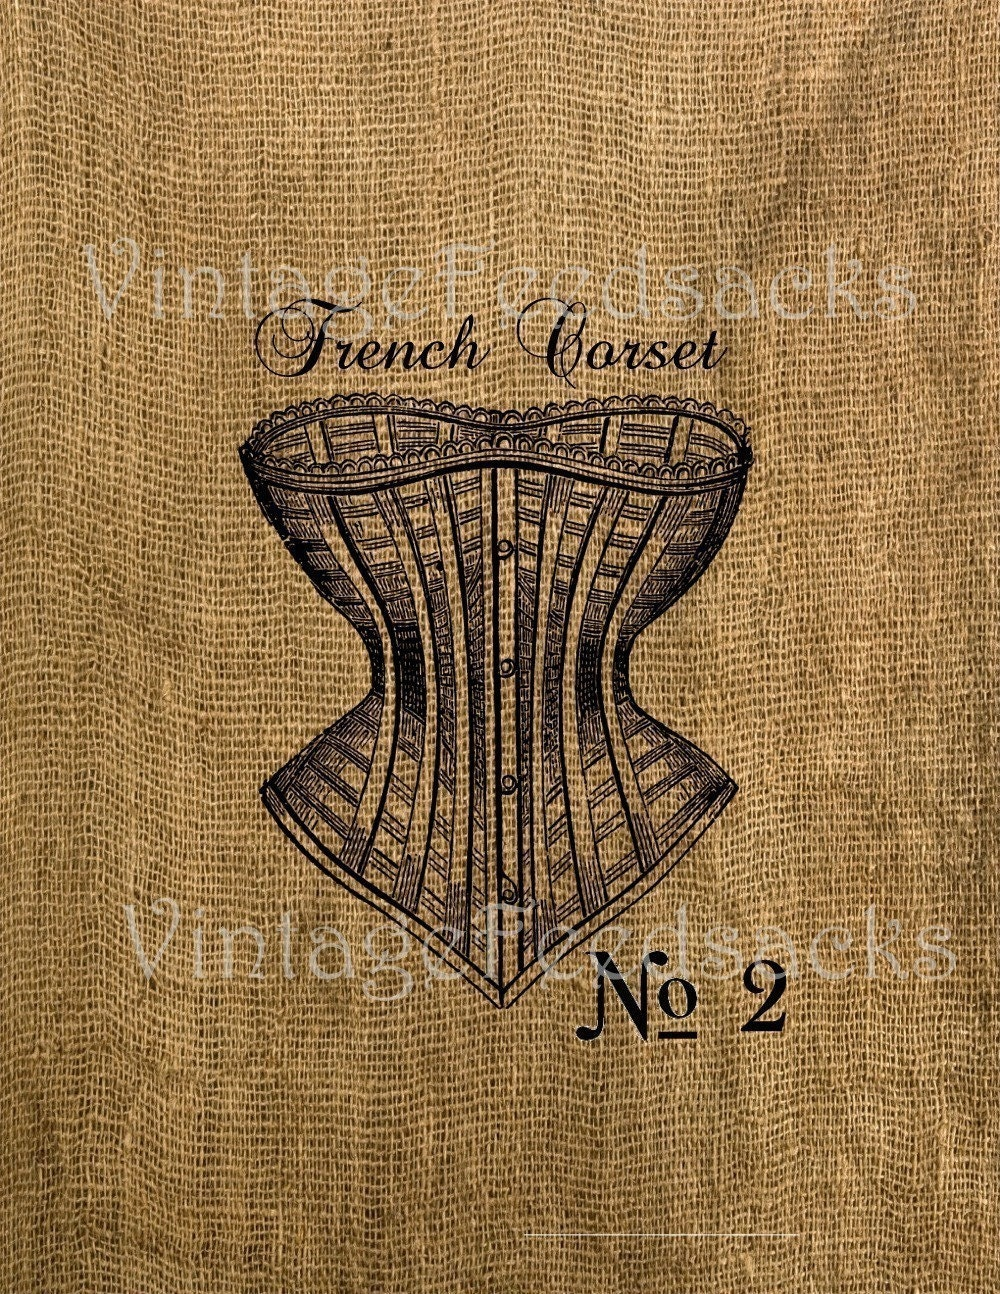 Vintage French Feedsack Corset Burlap Iron on Transfer 8.5x11 Tea Towel Pillow Digital Download No 199